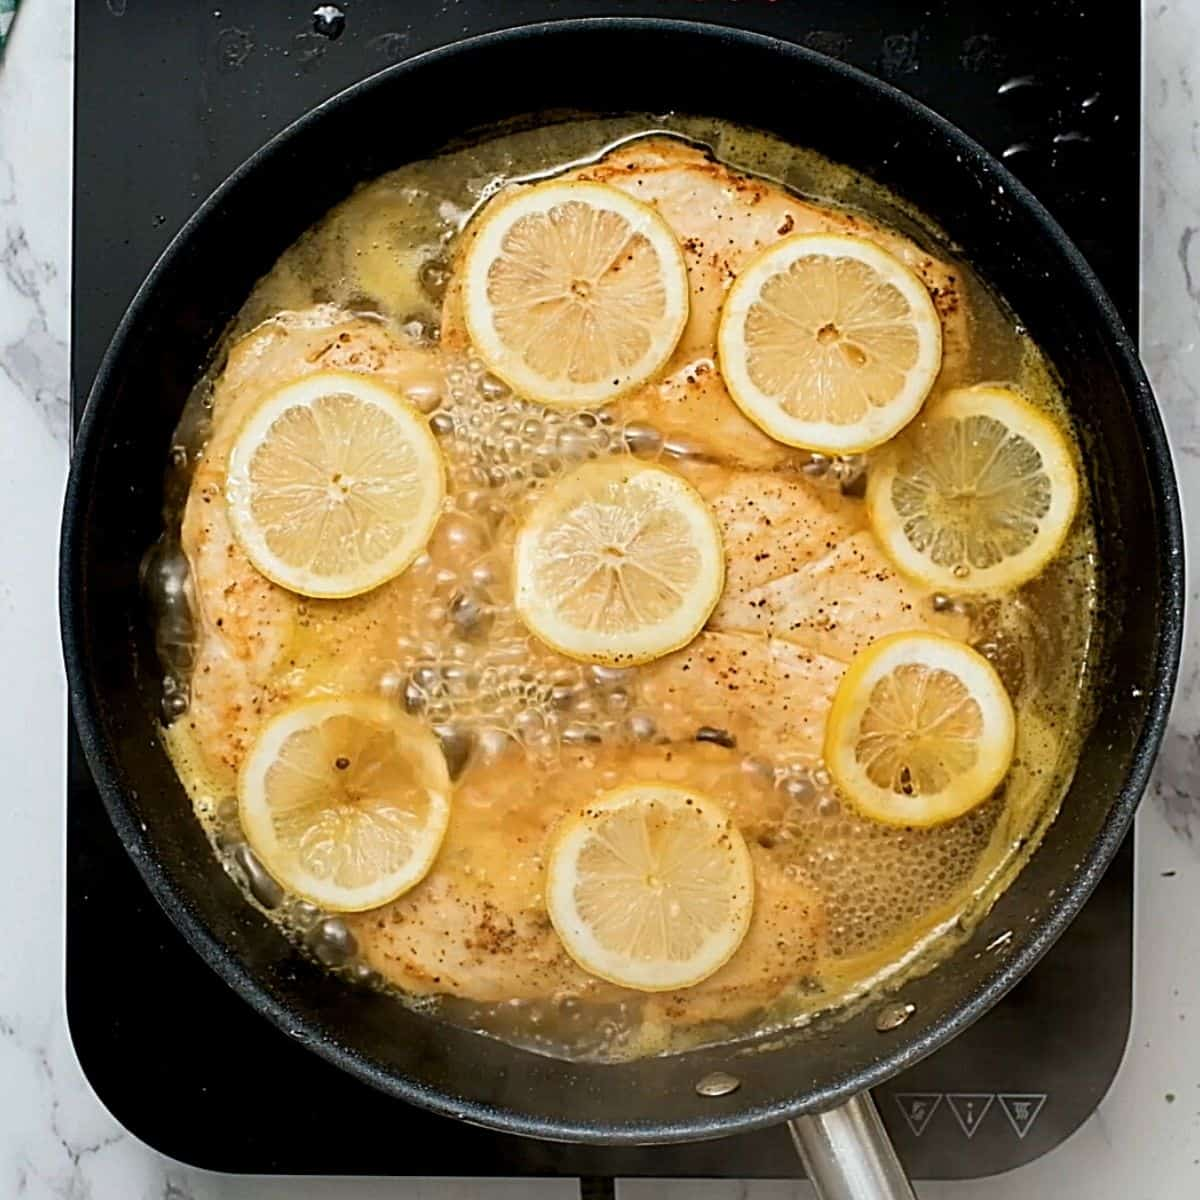 Chicken cutlets in a skillet topped with lemon slices.